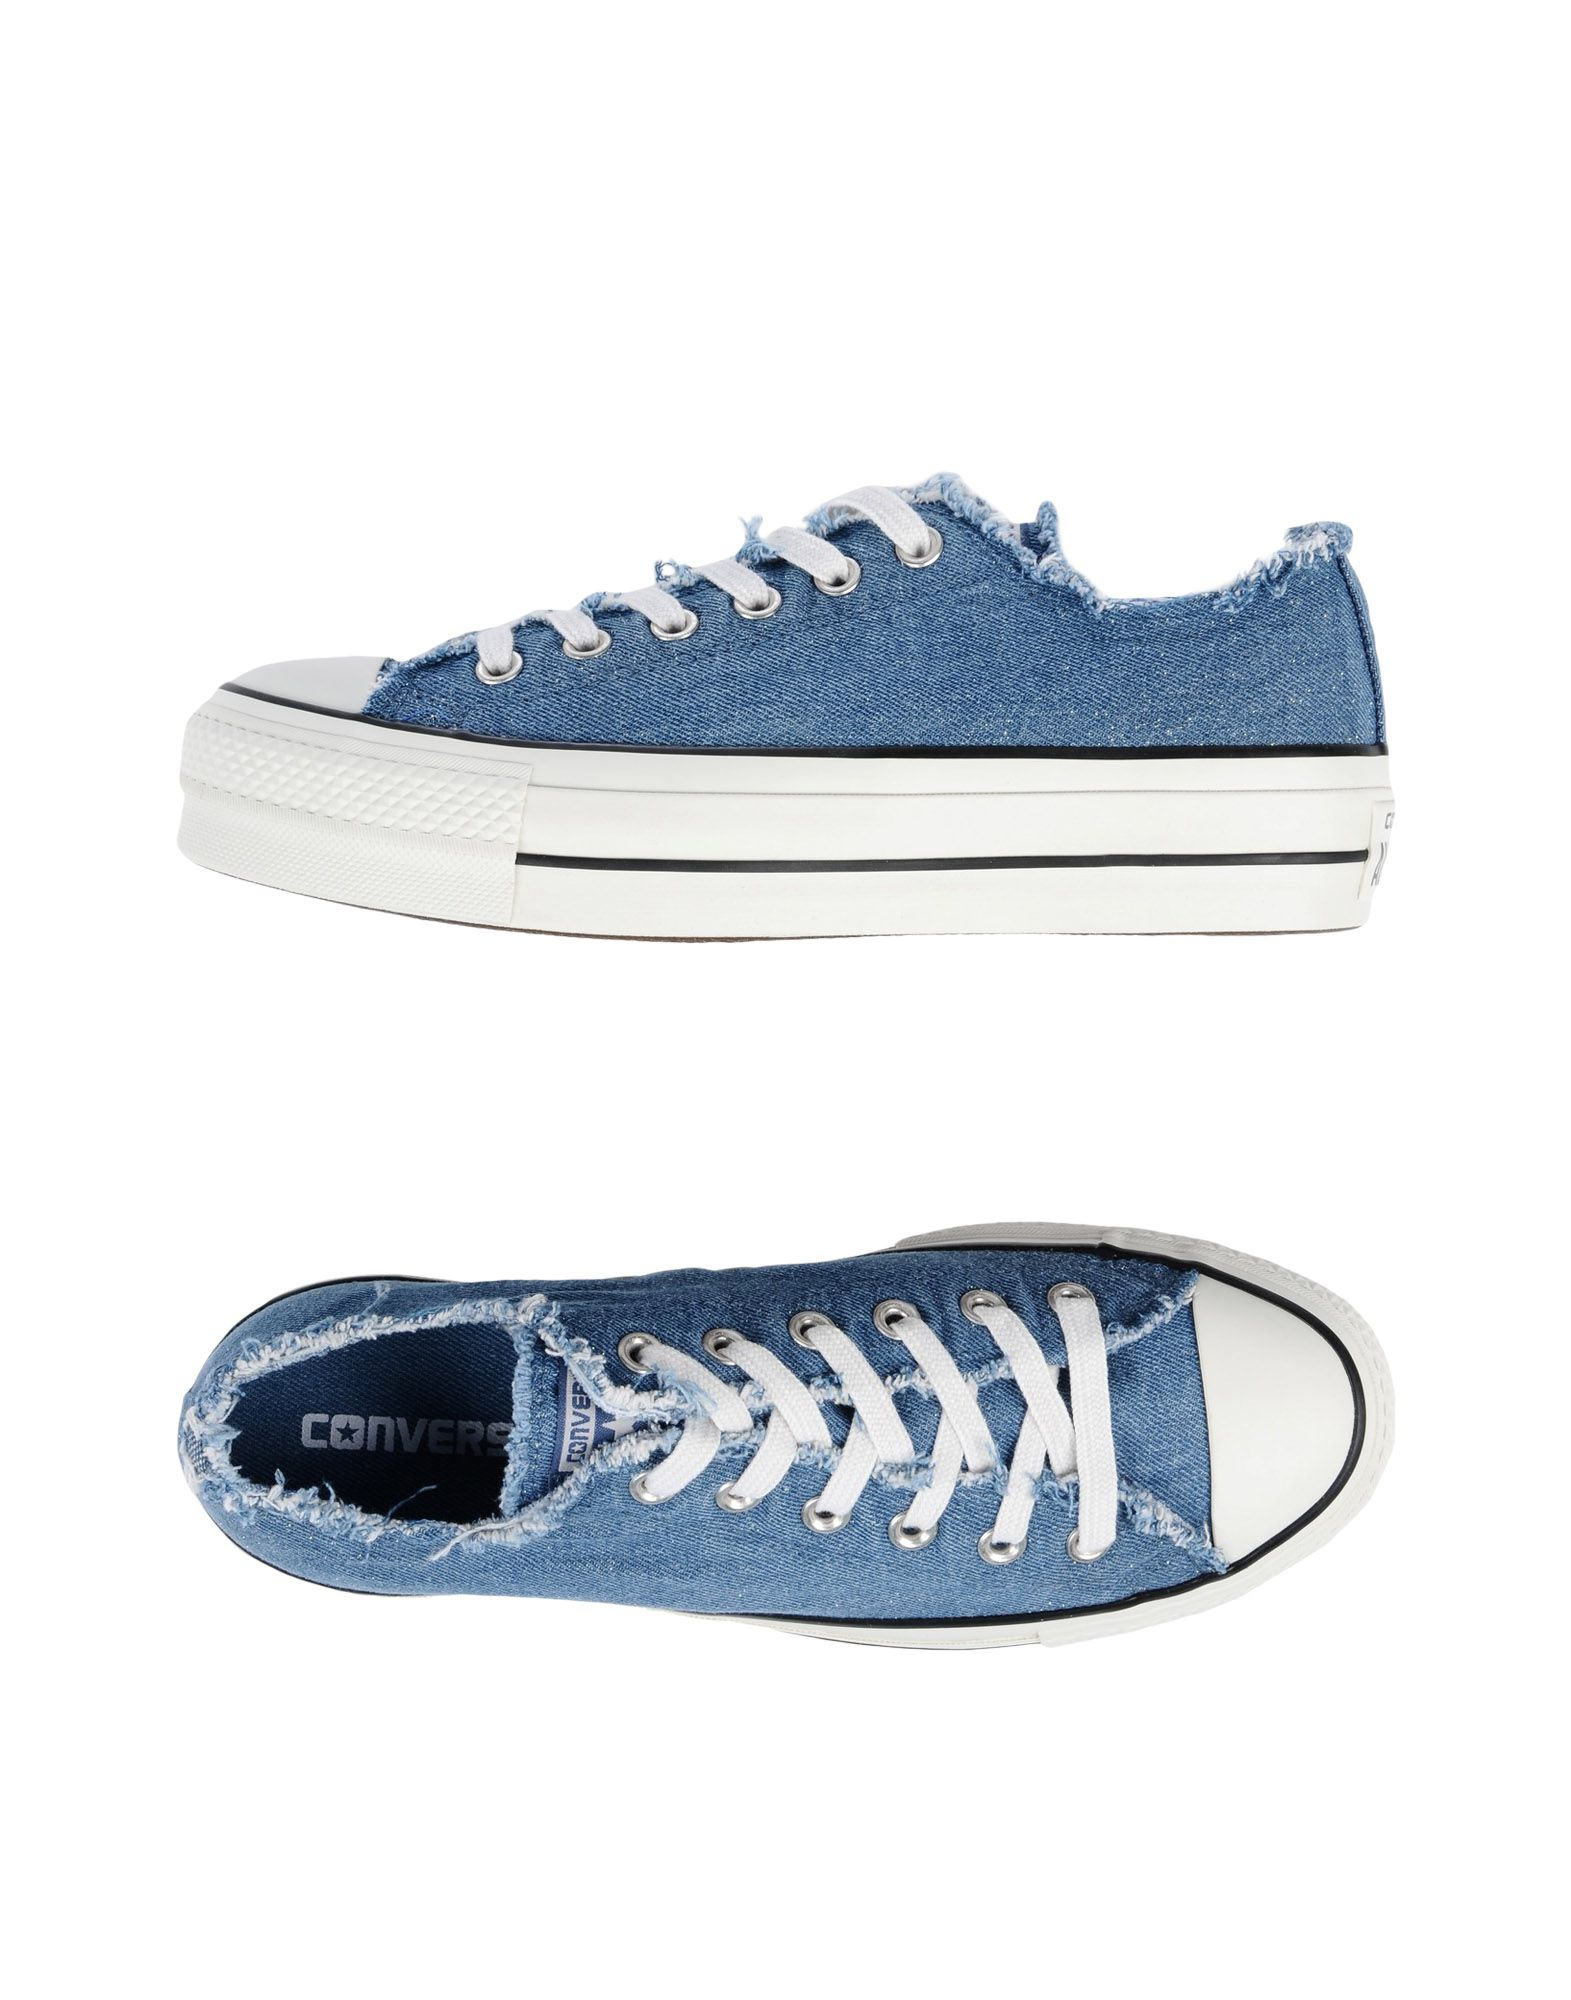 Zapatillas Converse All Star Ctas Ctas Ctas Ox Clean Lift Dim Frayed - Mujer - Zapatillas Converse All Star b9ac5d